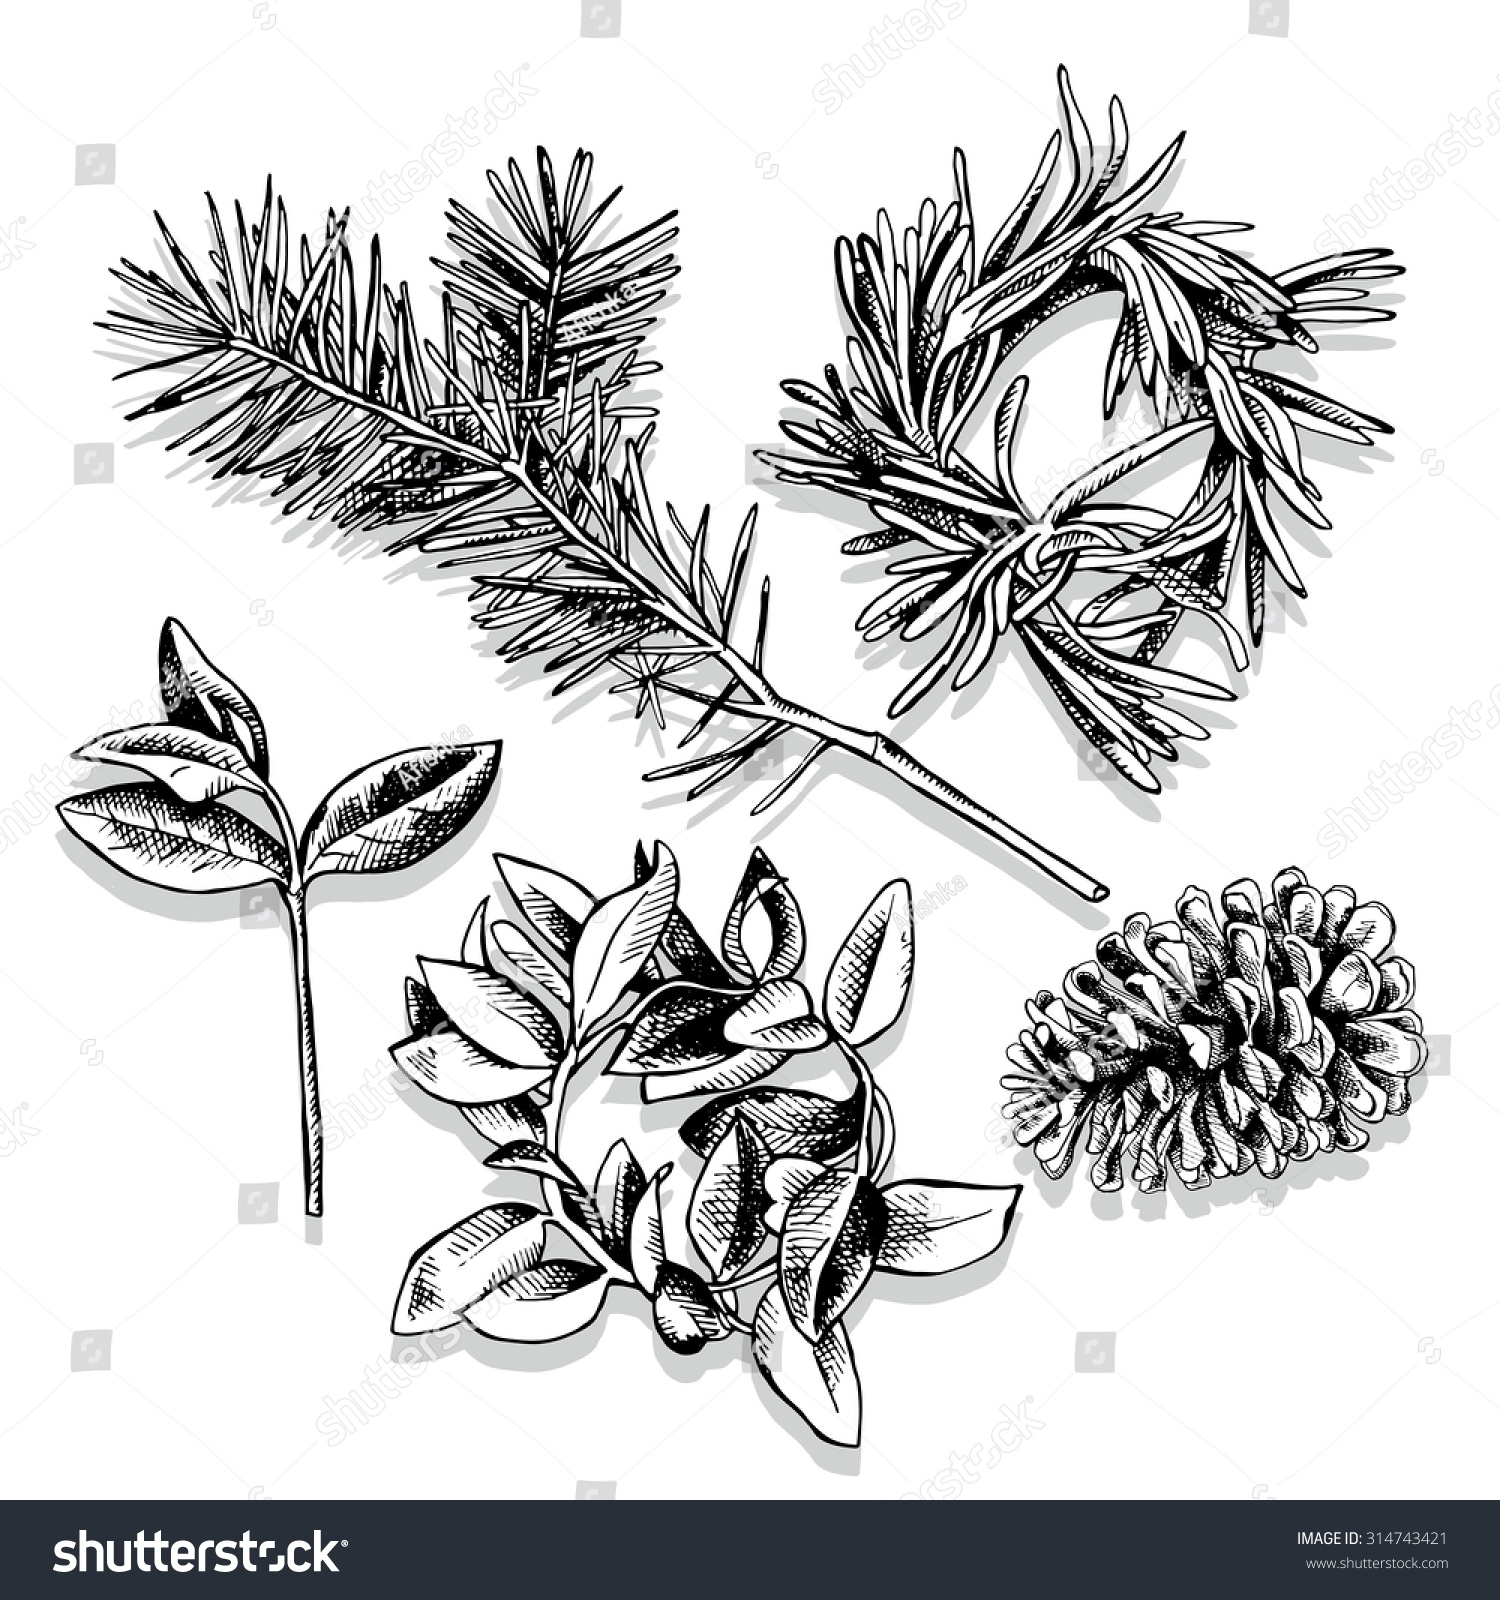 Pine Cone Illustration Set Images Christmas W...